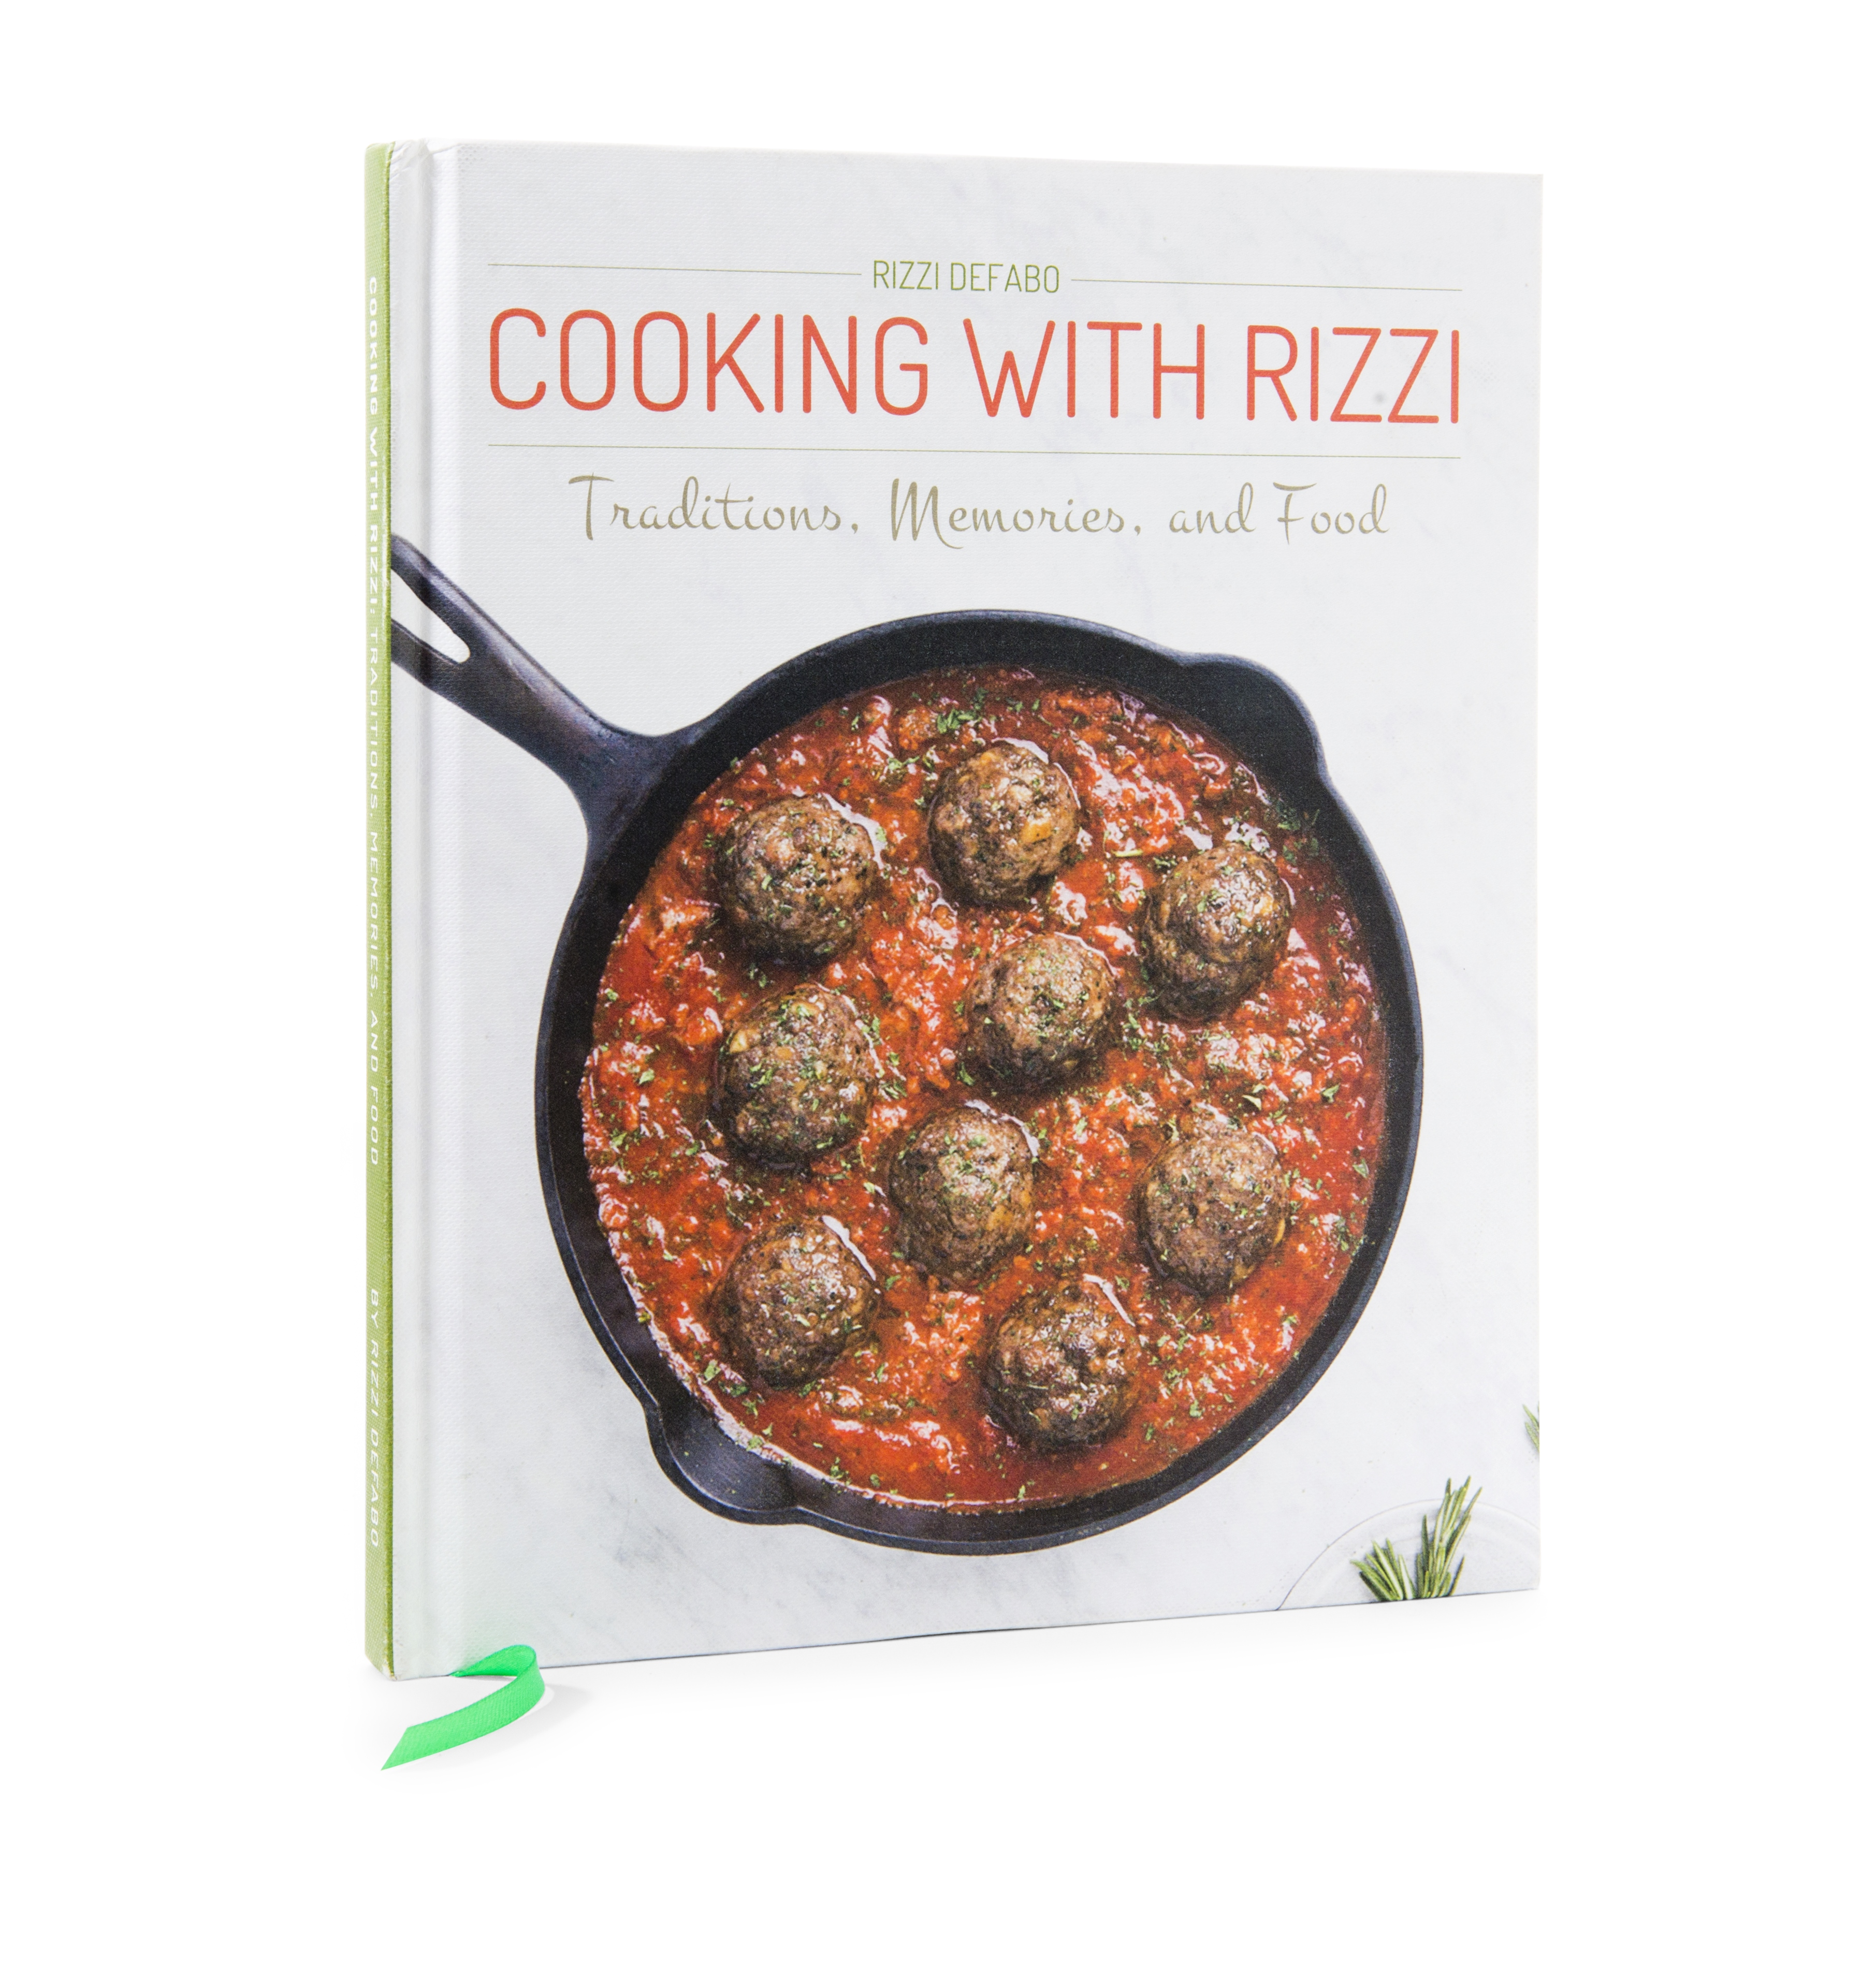 Cooking with Rizzi: Traditions, Memories, and Food